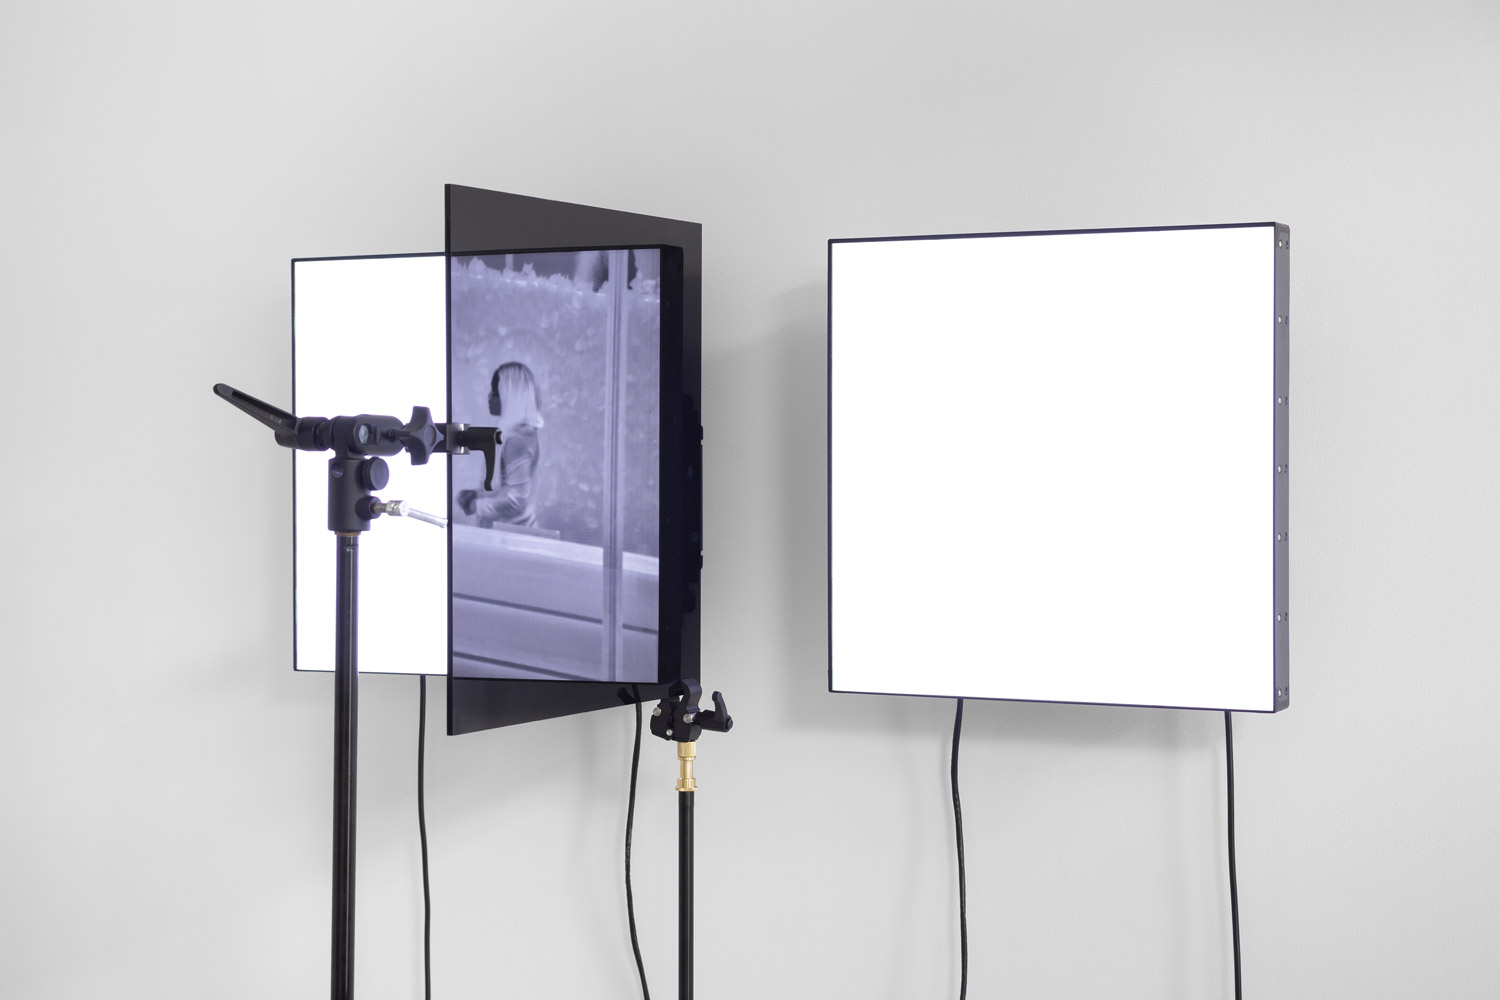 VideoSculpture XXI (Vegas), 2019. 2 Manipulated LCD screens, 2 Tripods, Plexiglass, cables, HD Video (15 minute loop). 181 x 96 x 75 cm. Courtesy Emmanuel Van Der Auwera and Harlan Levey Projects Gallery (Brussels).